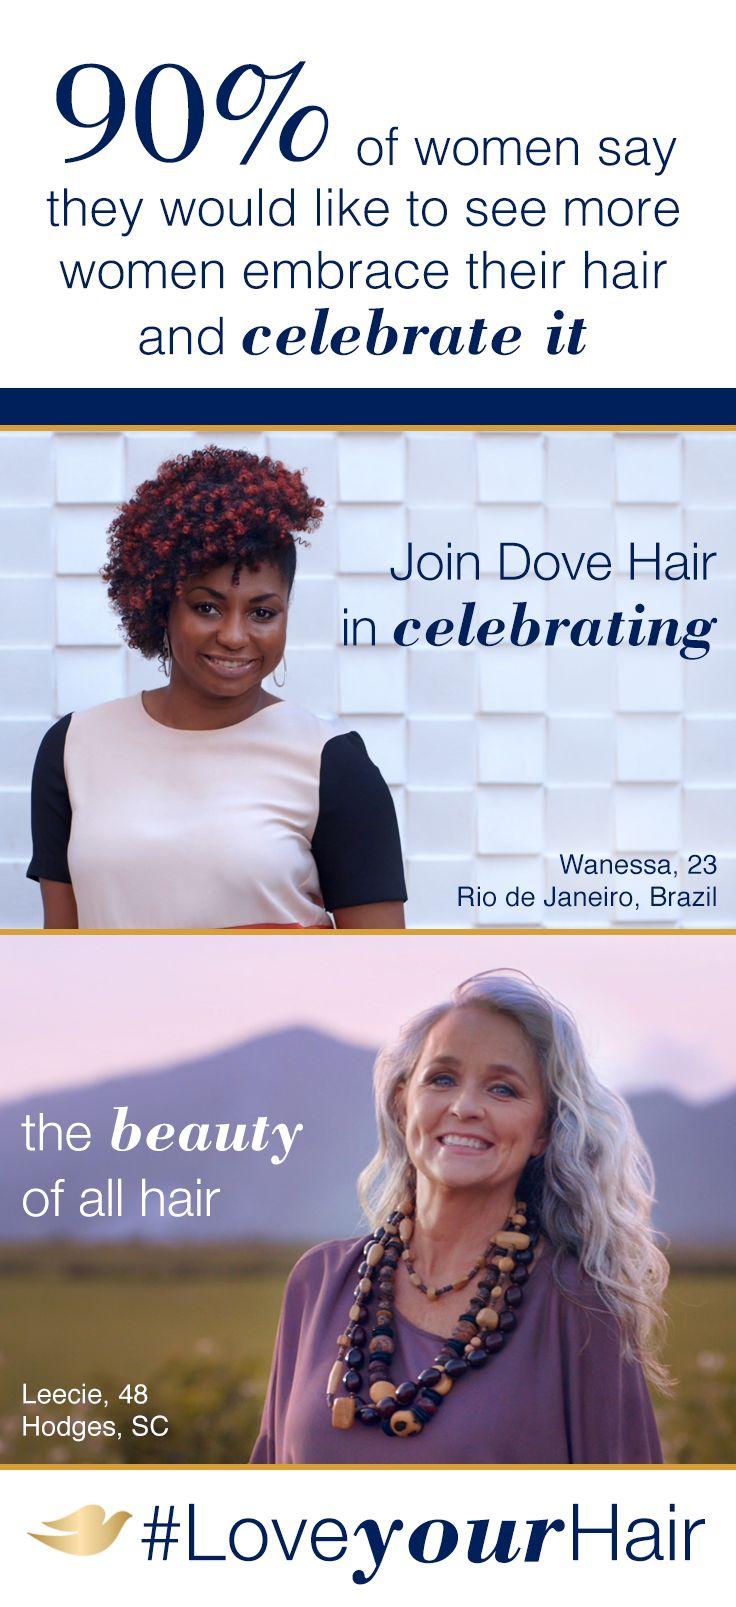 Red or gray. Curly or straight. Short or long. Dove Hair believes that beautiful hair isn't just the narrow depiction you've seen in advertisements or the media–it's whatever makes you feel like YOU. See our new definition of beautiful at Pinterest.com/DoveHair. #LoveYourHair